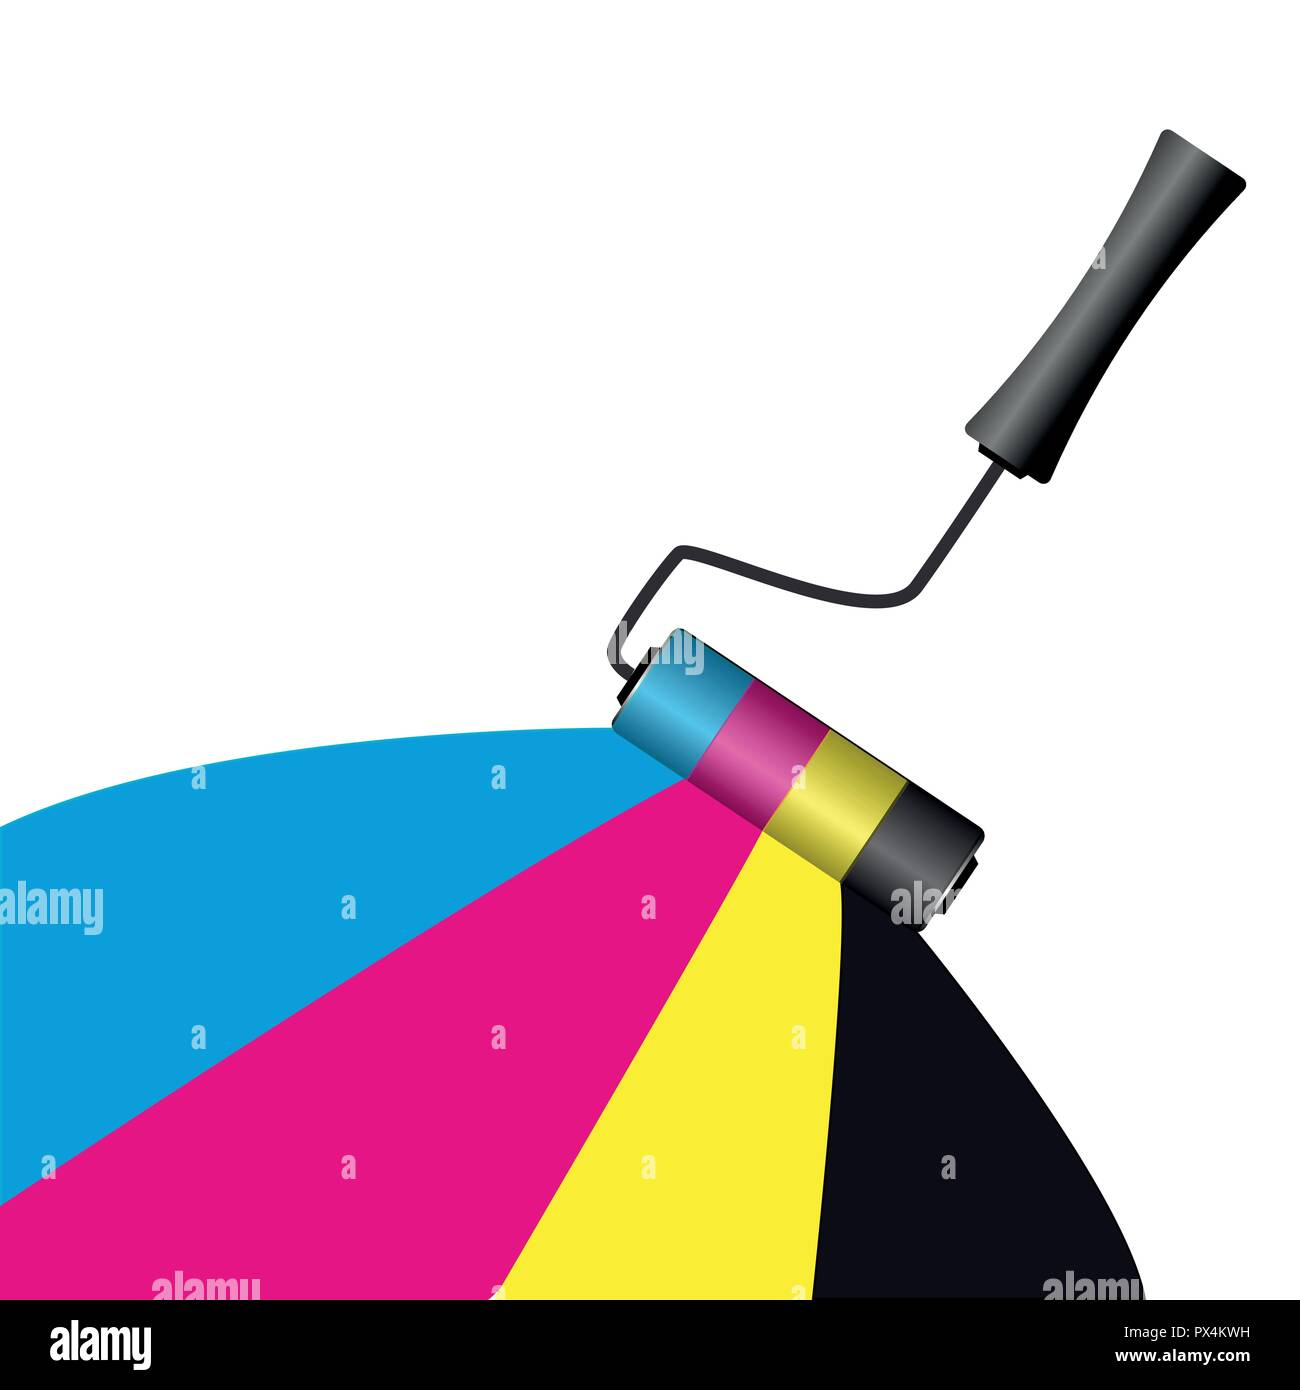 cmyk painting with roller on white background vector illustration EPS10 - Stock Image